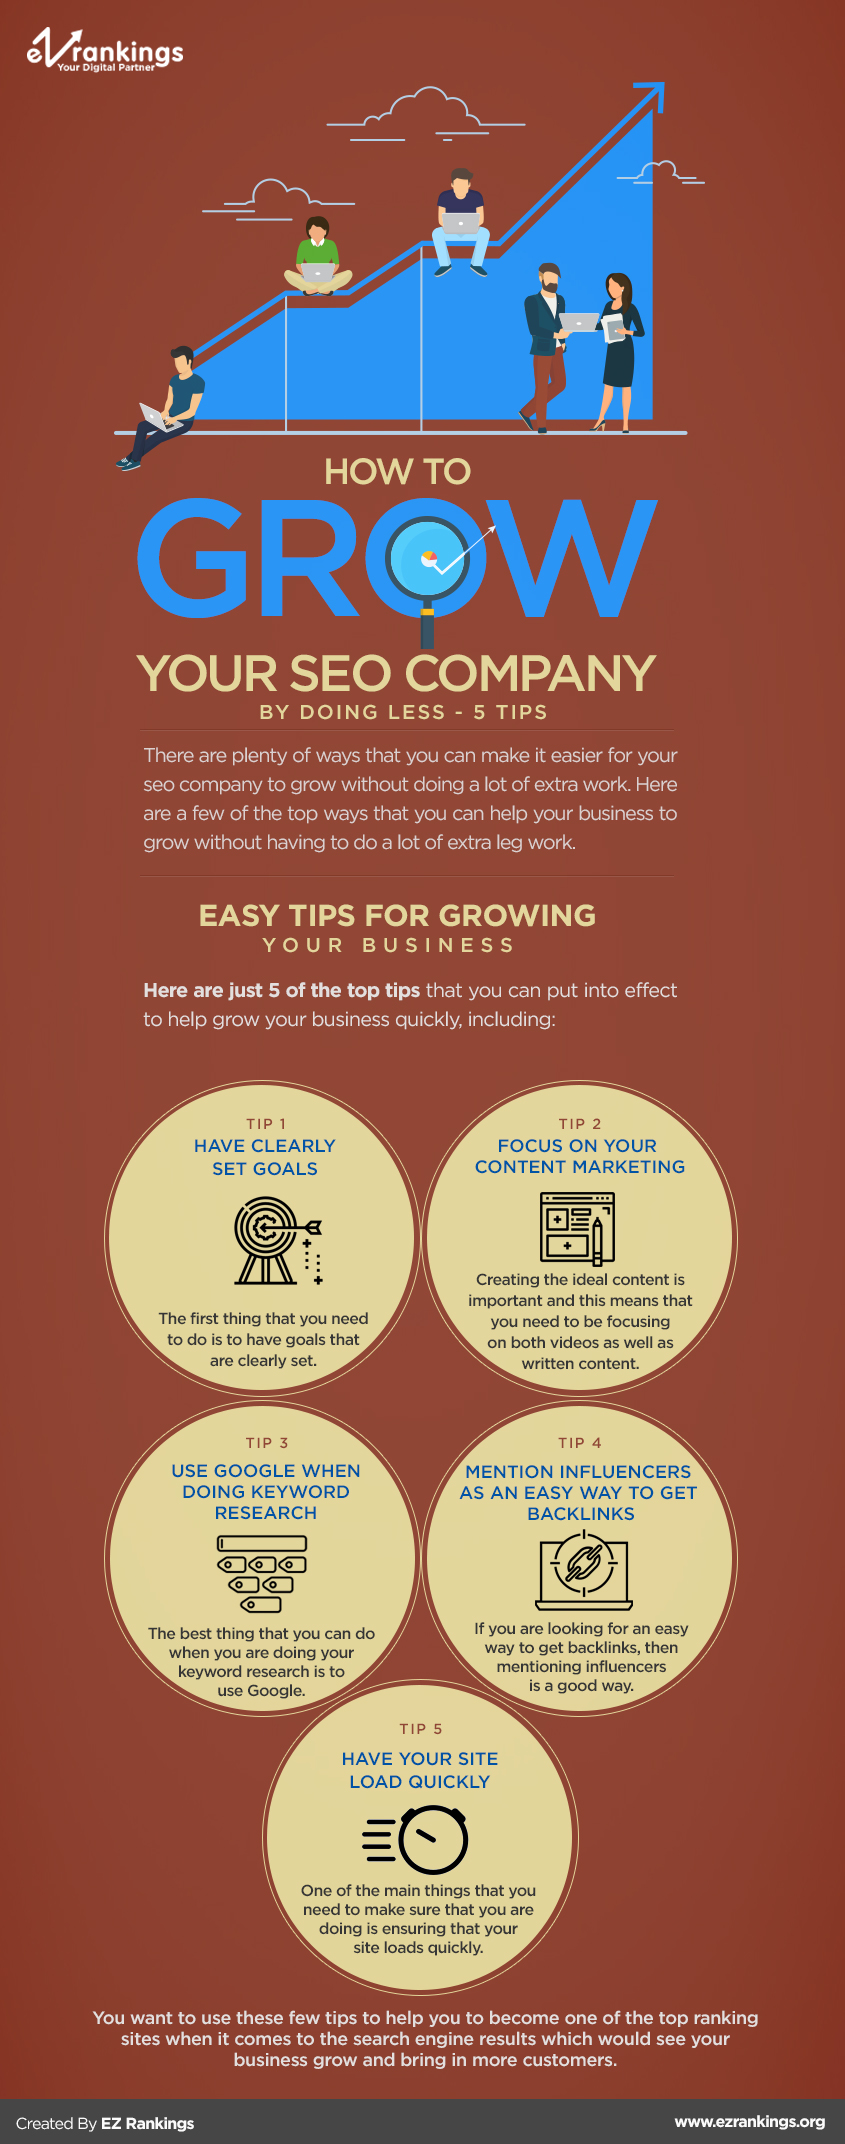 These 5 Steps Help To Grow Your SEO Company